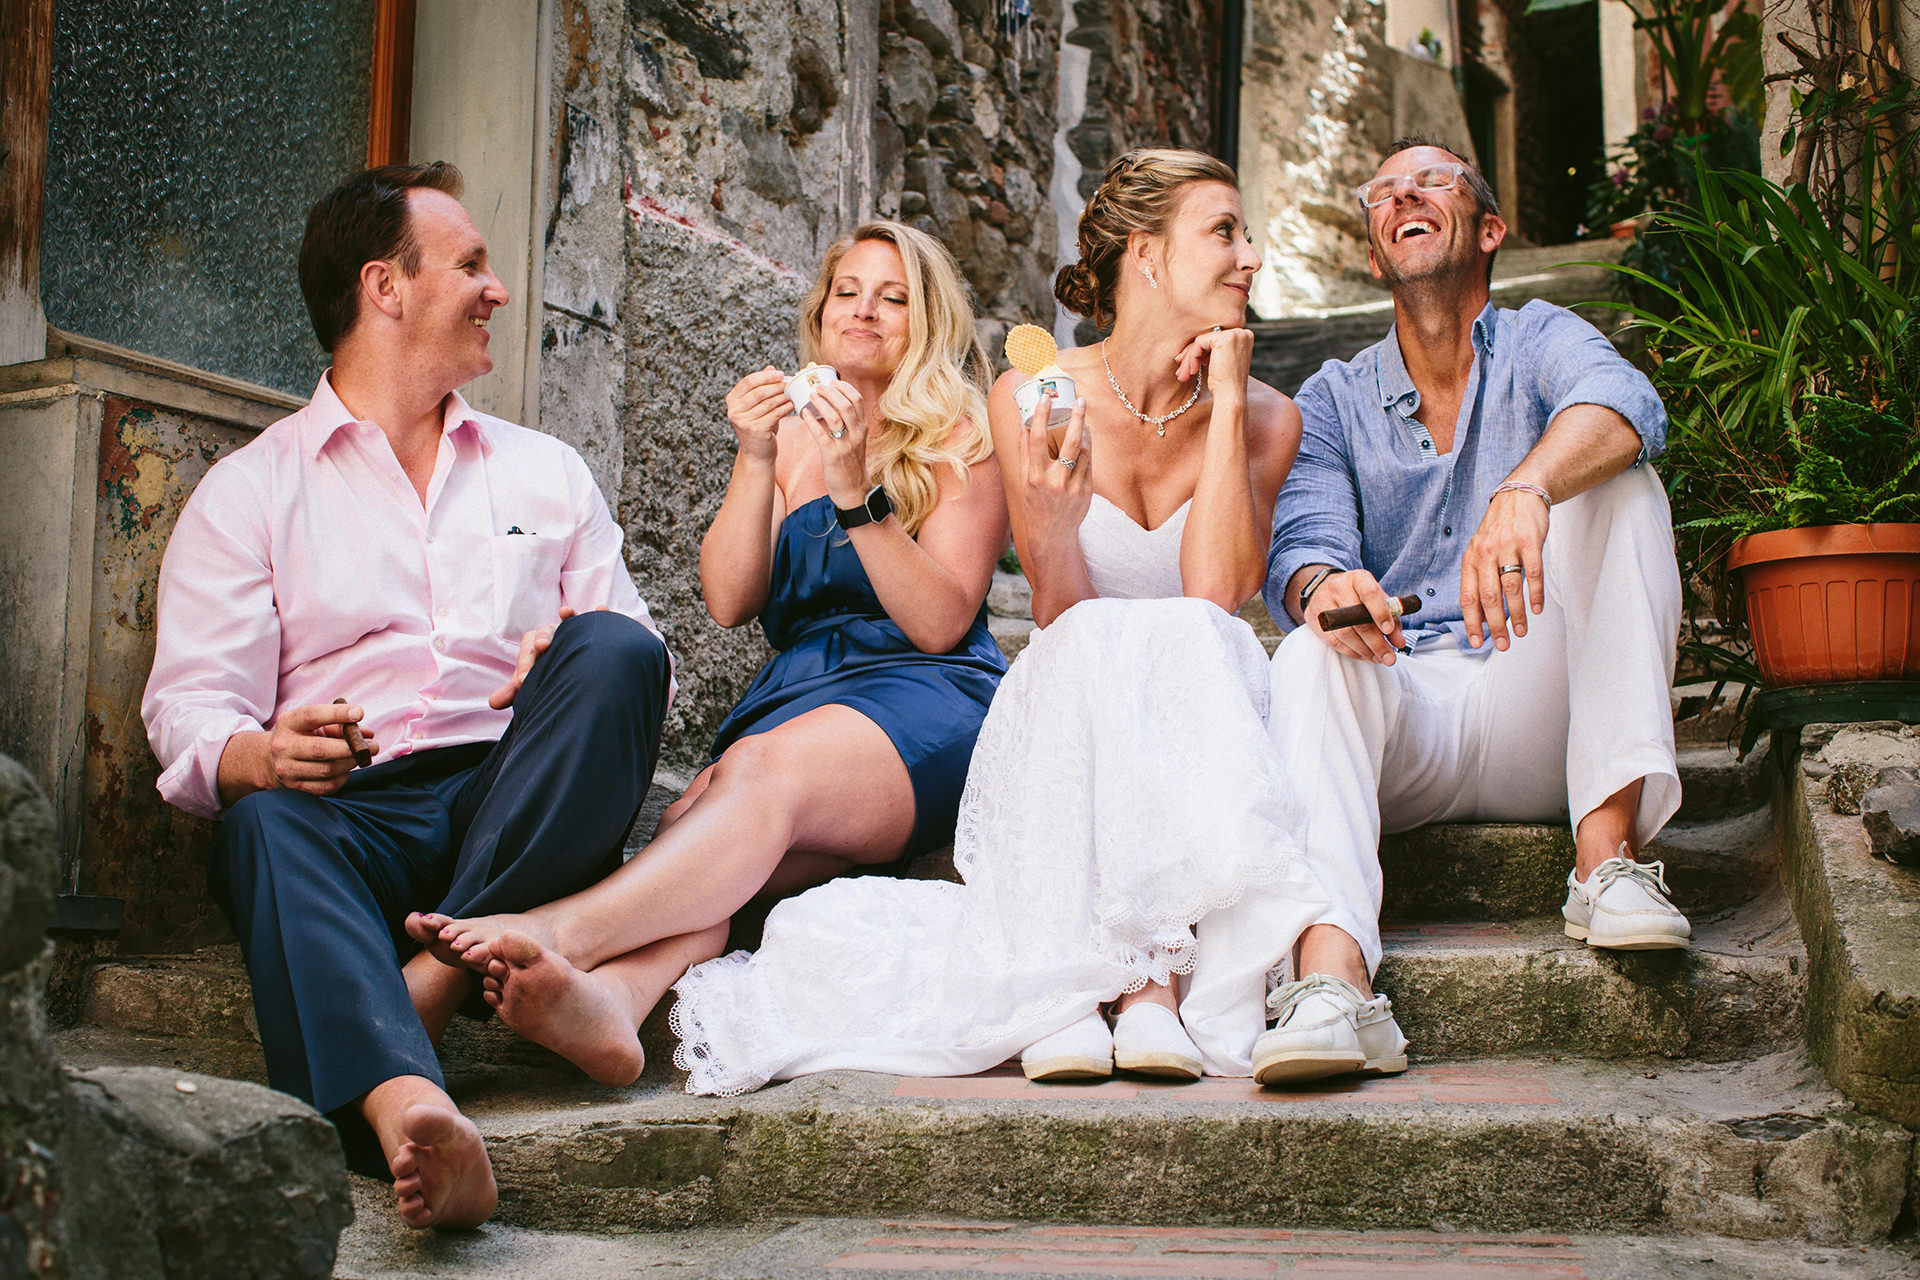 Vernazza Italy Elopement Image | The end of the ceremony was celebrated with a delicious Italian gelato.